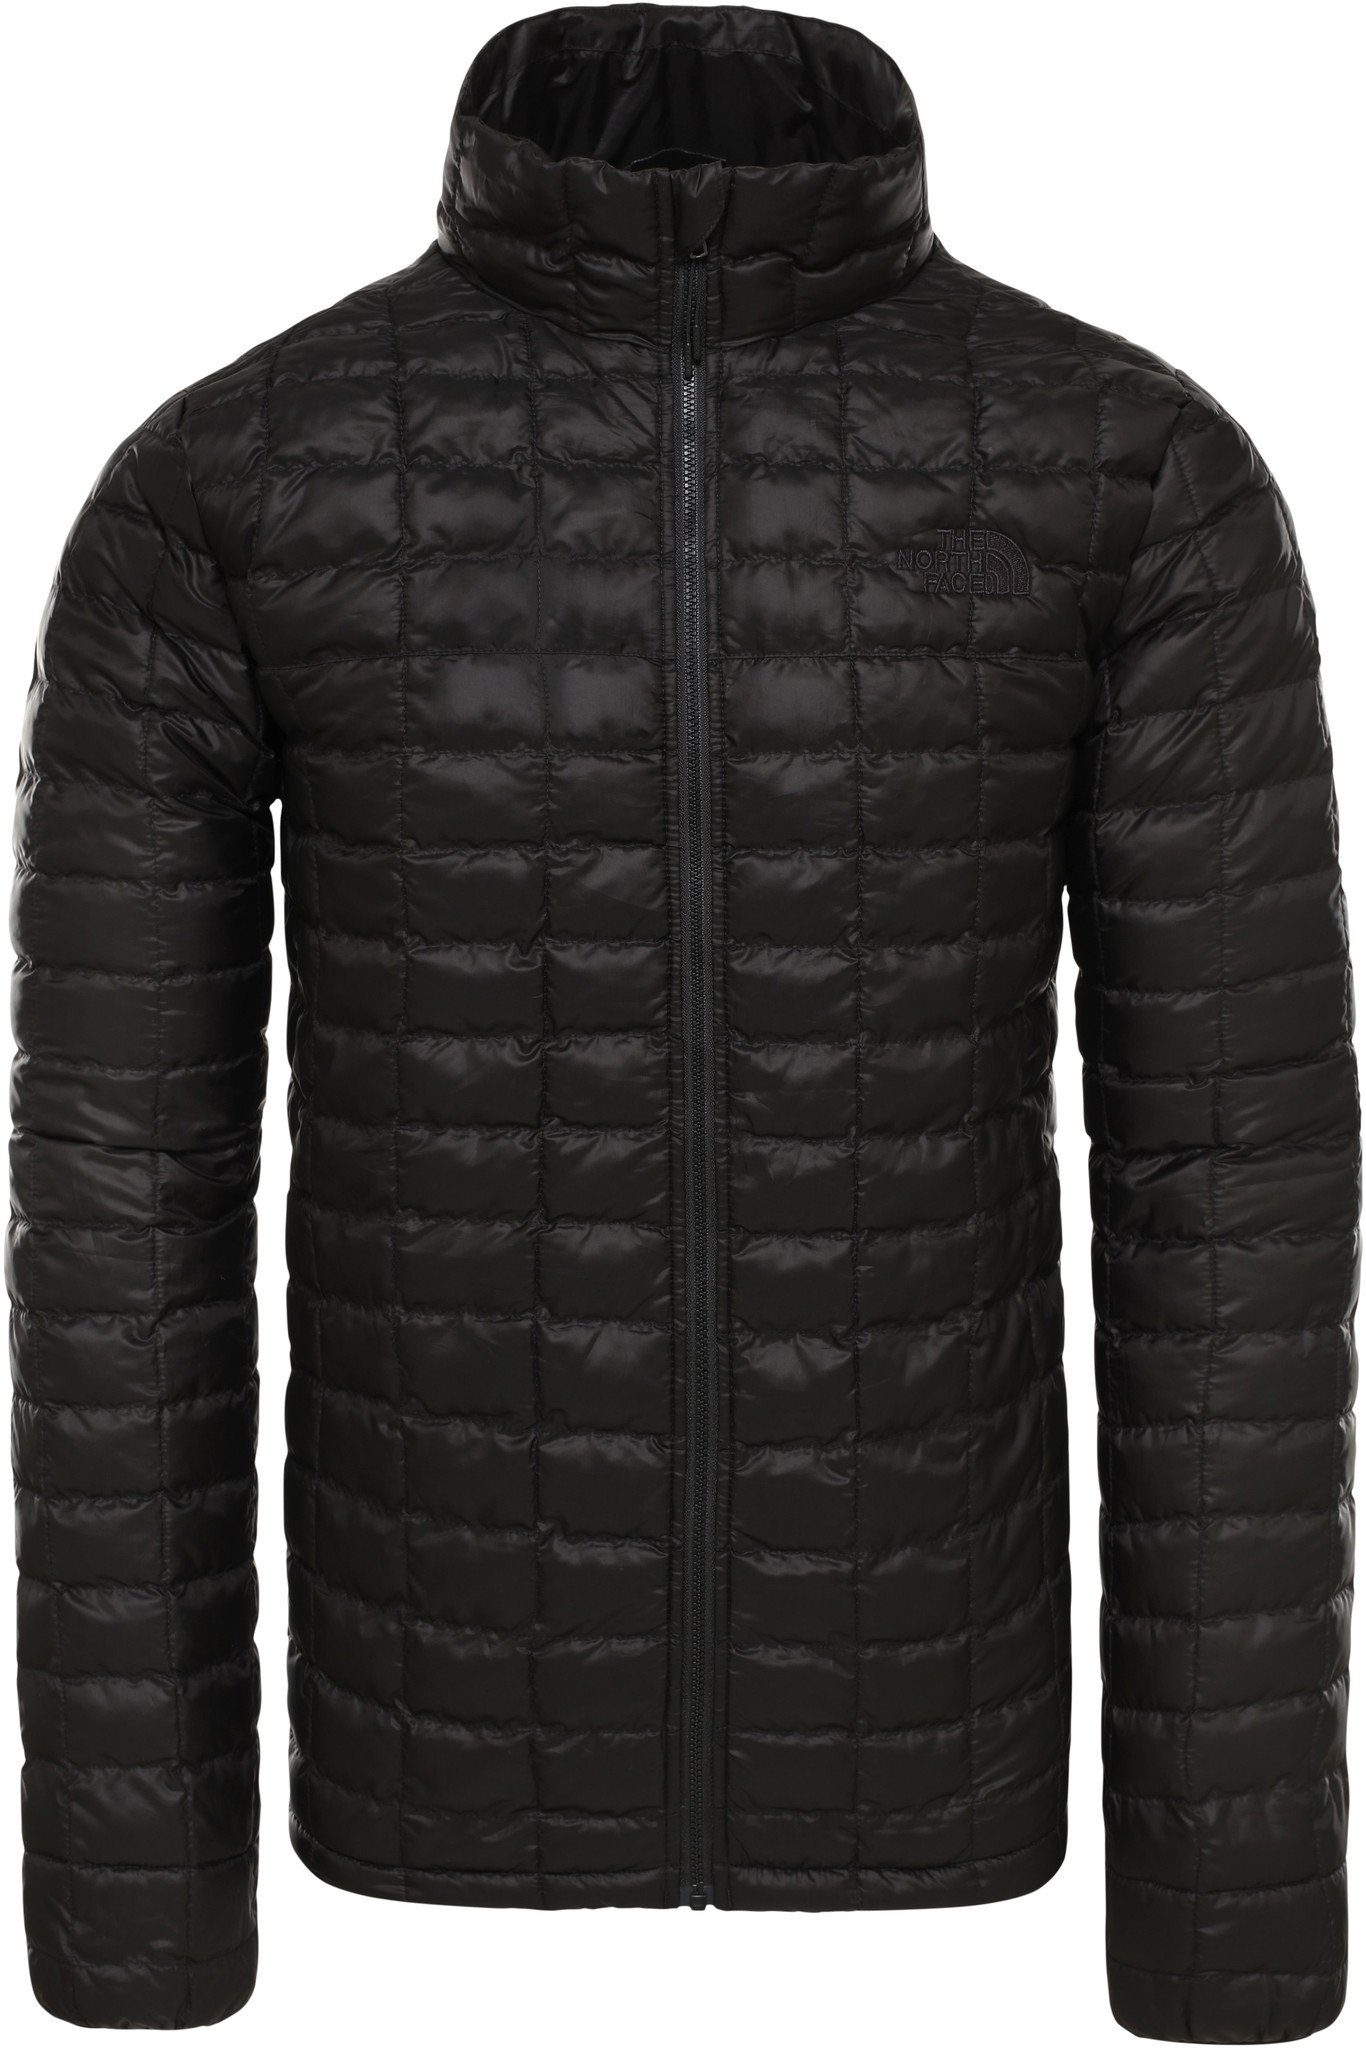 The North Face Outdoorjacke »ThermoBall Eco Jacke Herren« online kaufen | OTTO